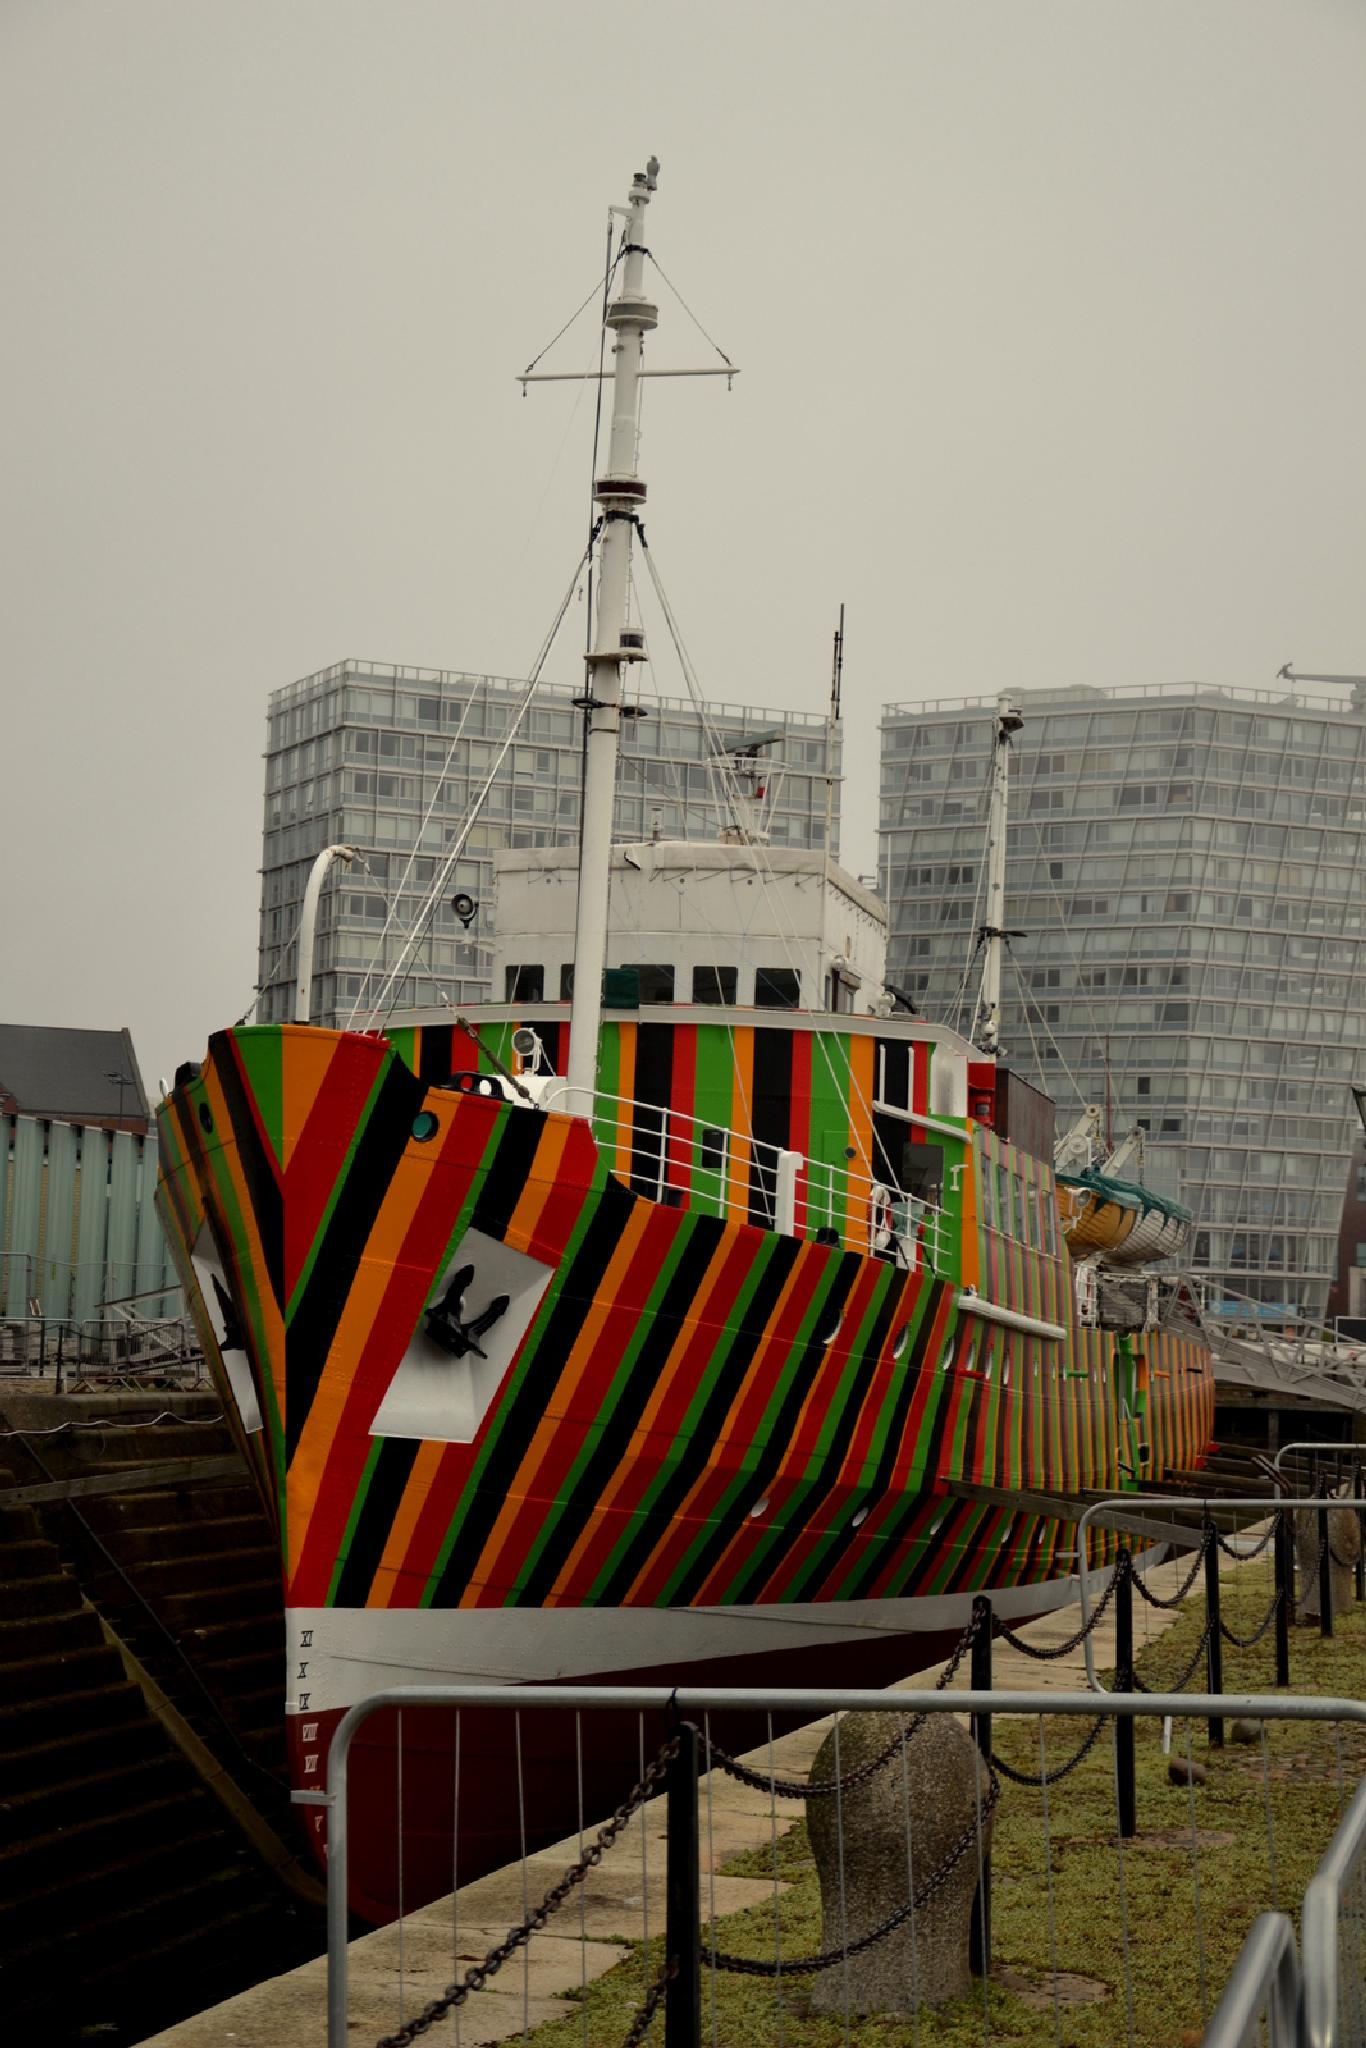 Dazzle Ship by stephen.spencer.737